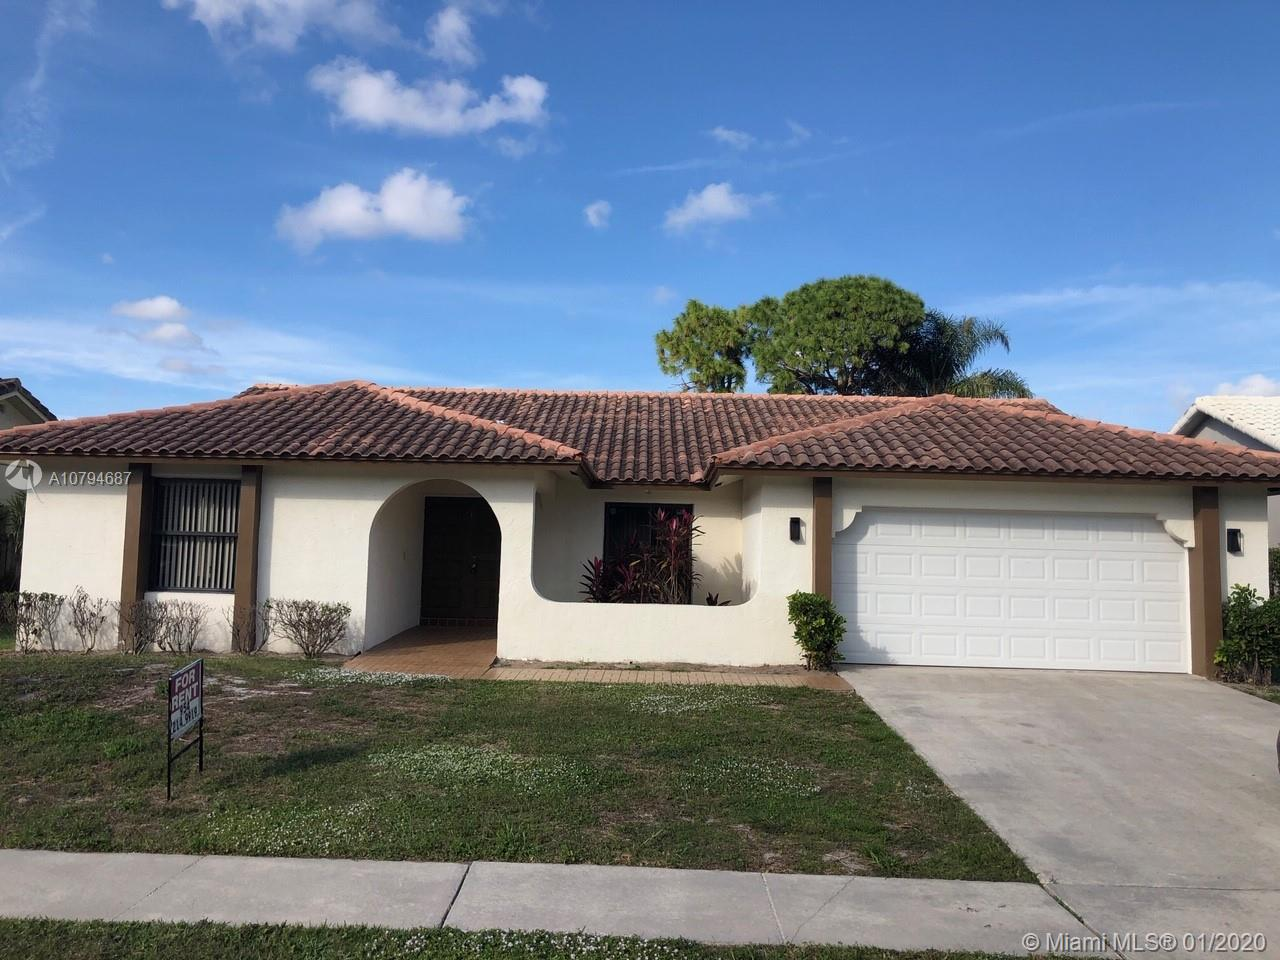 Great 4 bedroom, 2 bath, 2 car garage, pool home in Central Boca! Large covered, screened patio and pool! Spacious private back yard! Close to excellent schools, restaurants, shopping, houses of worship, I-95 and Turnpike! POOL AND LAWN MAINTENANCE INCLUDED! Owner may consider 1st month and security if tenants have great credit.